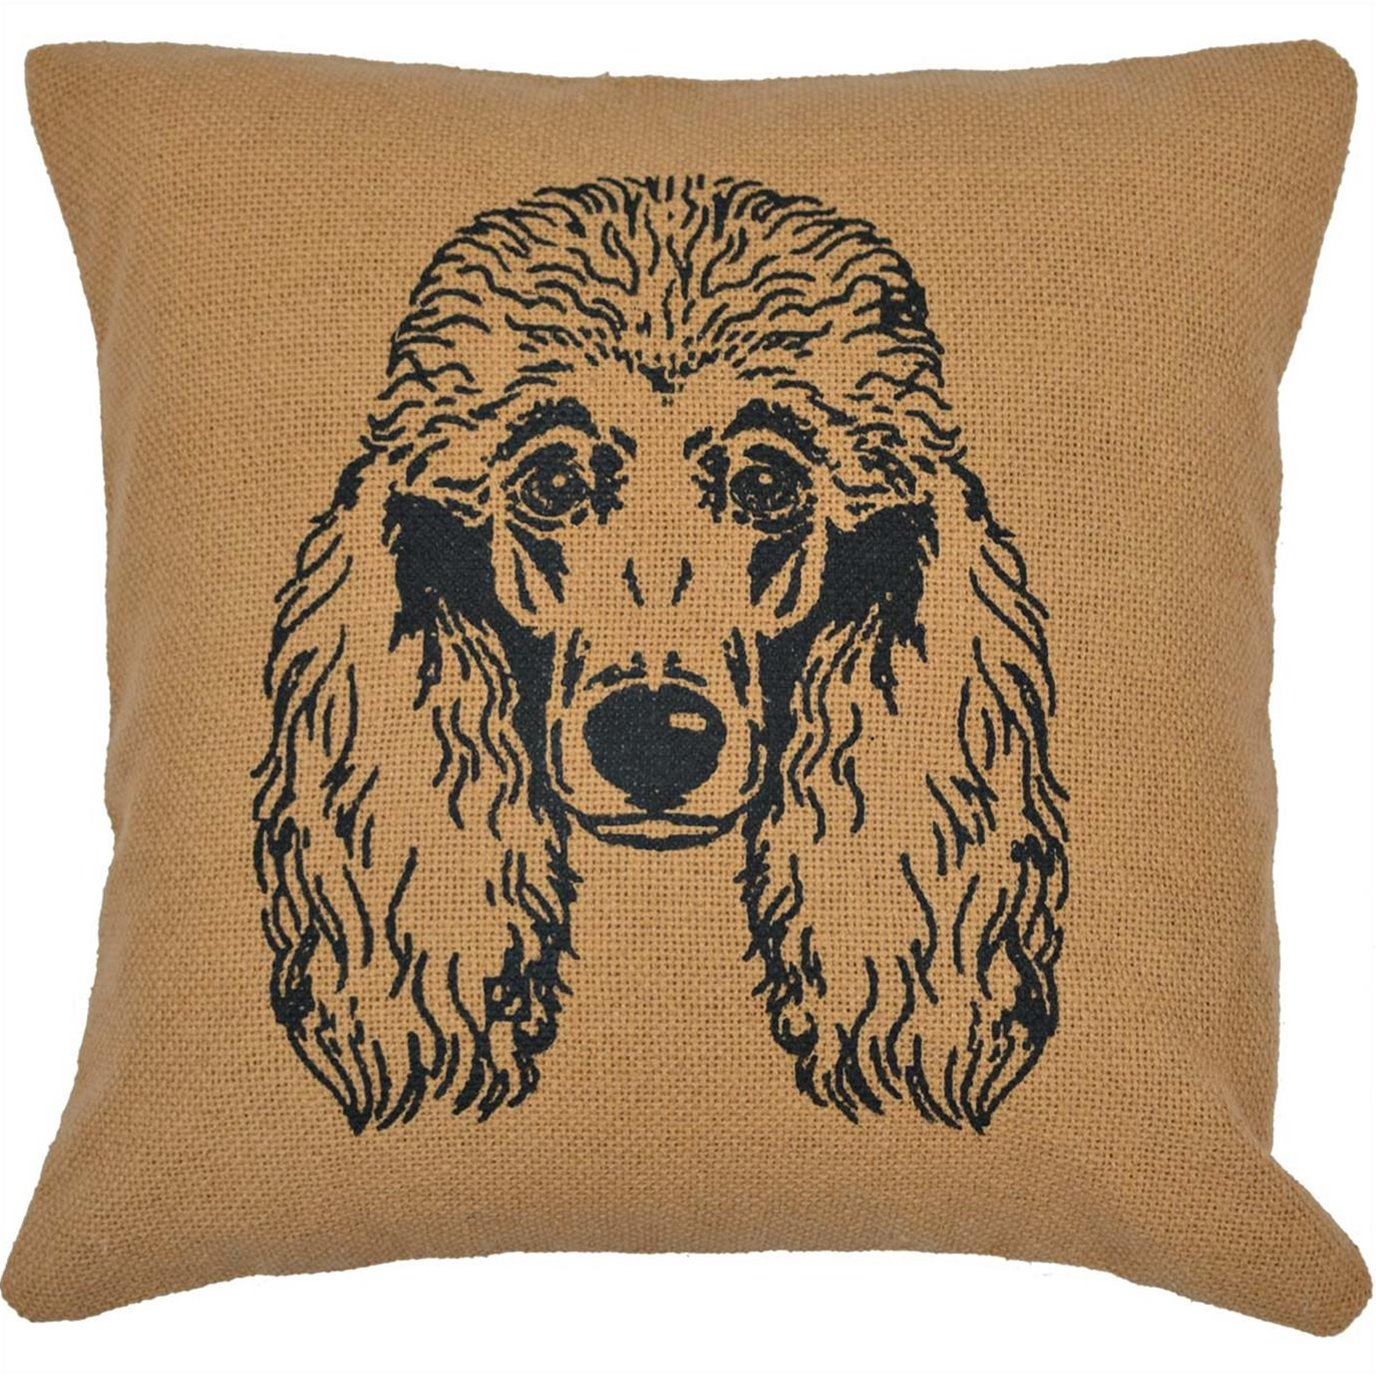 Poodle Pillow 16x16